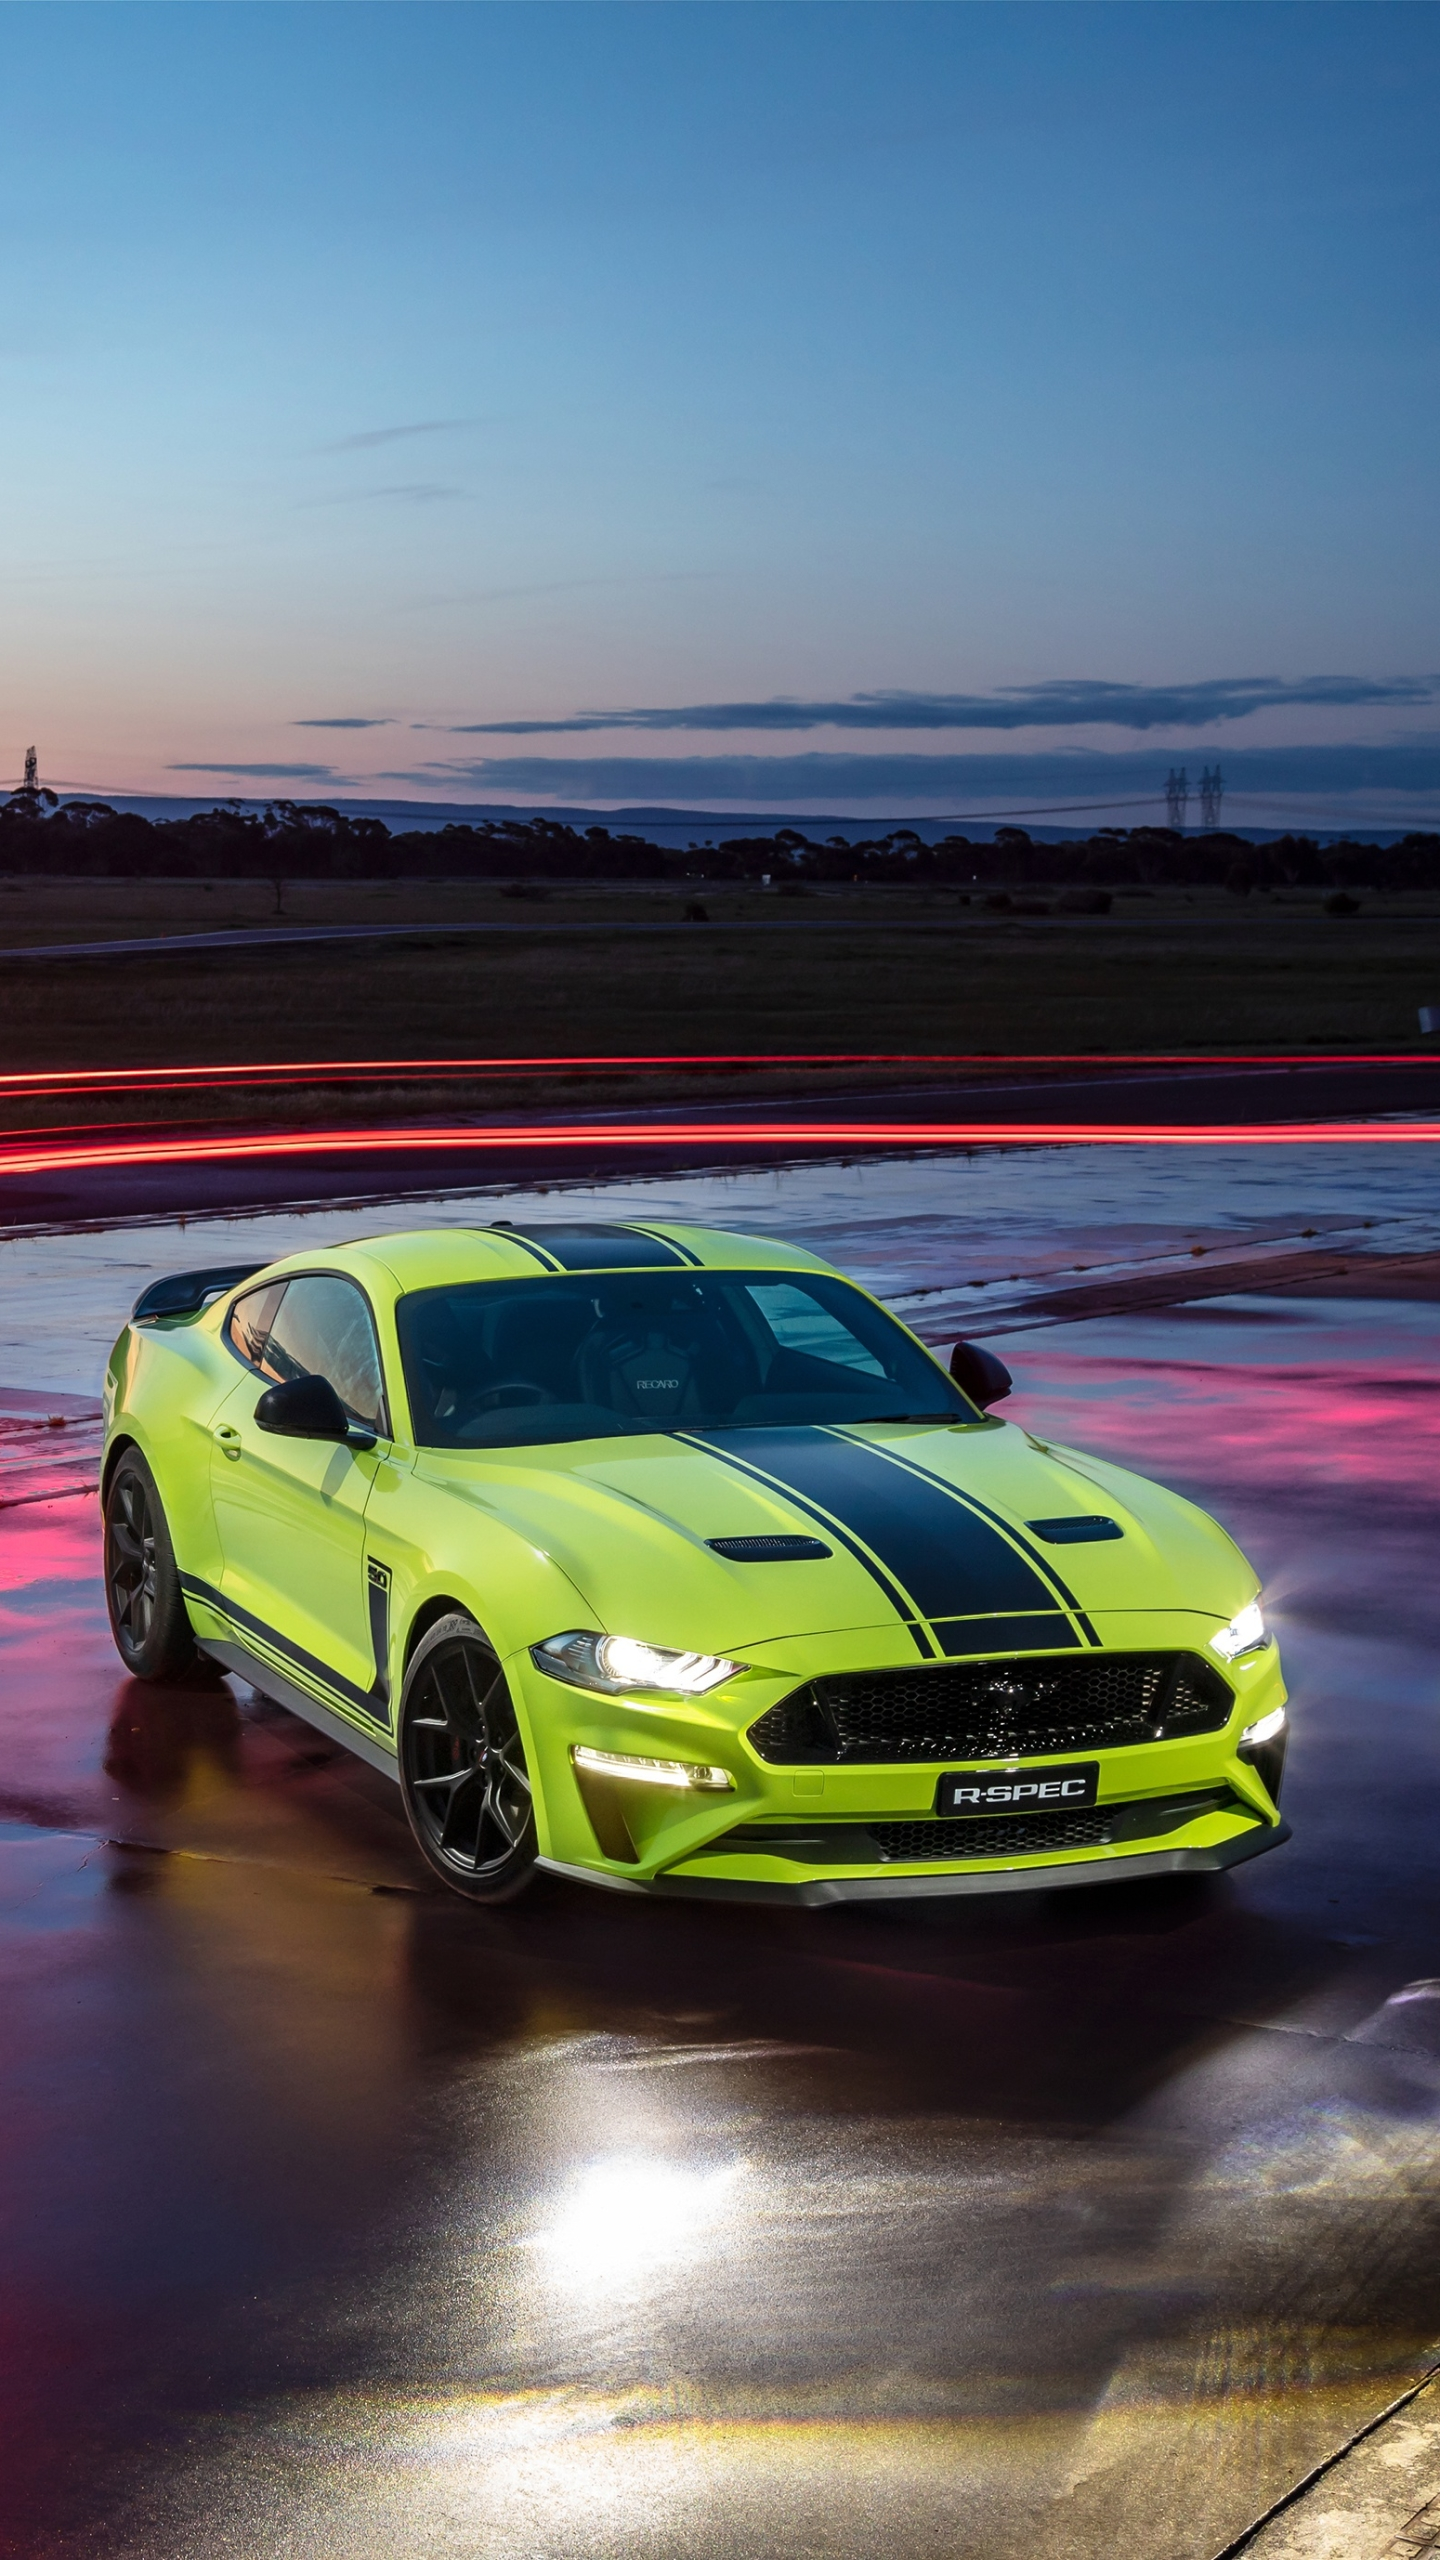 Vehiclesford Mustang R Spec 1440x2560 Wallpaper Id